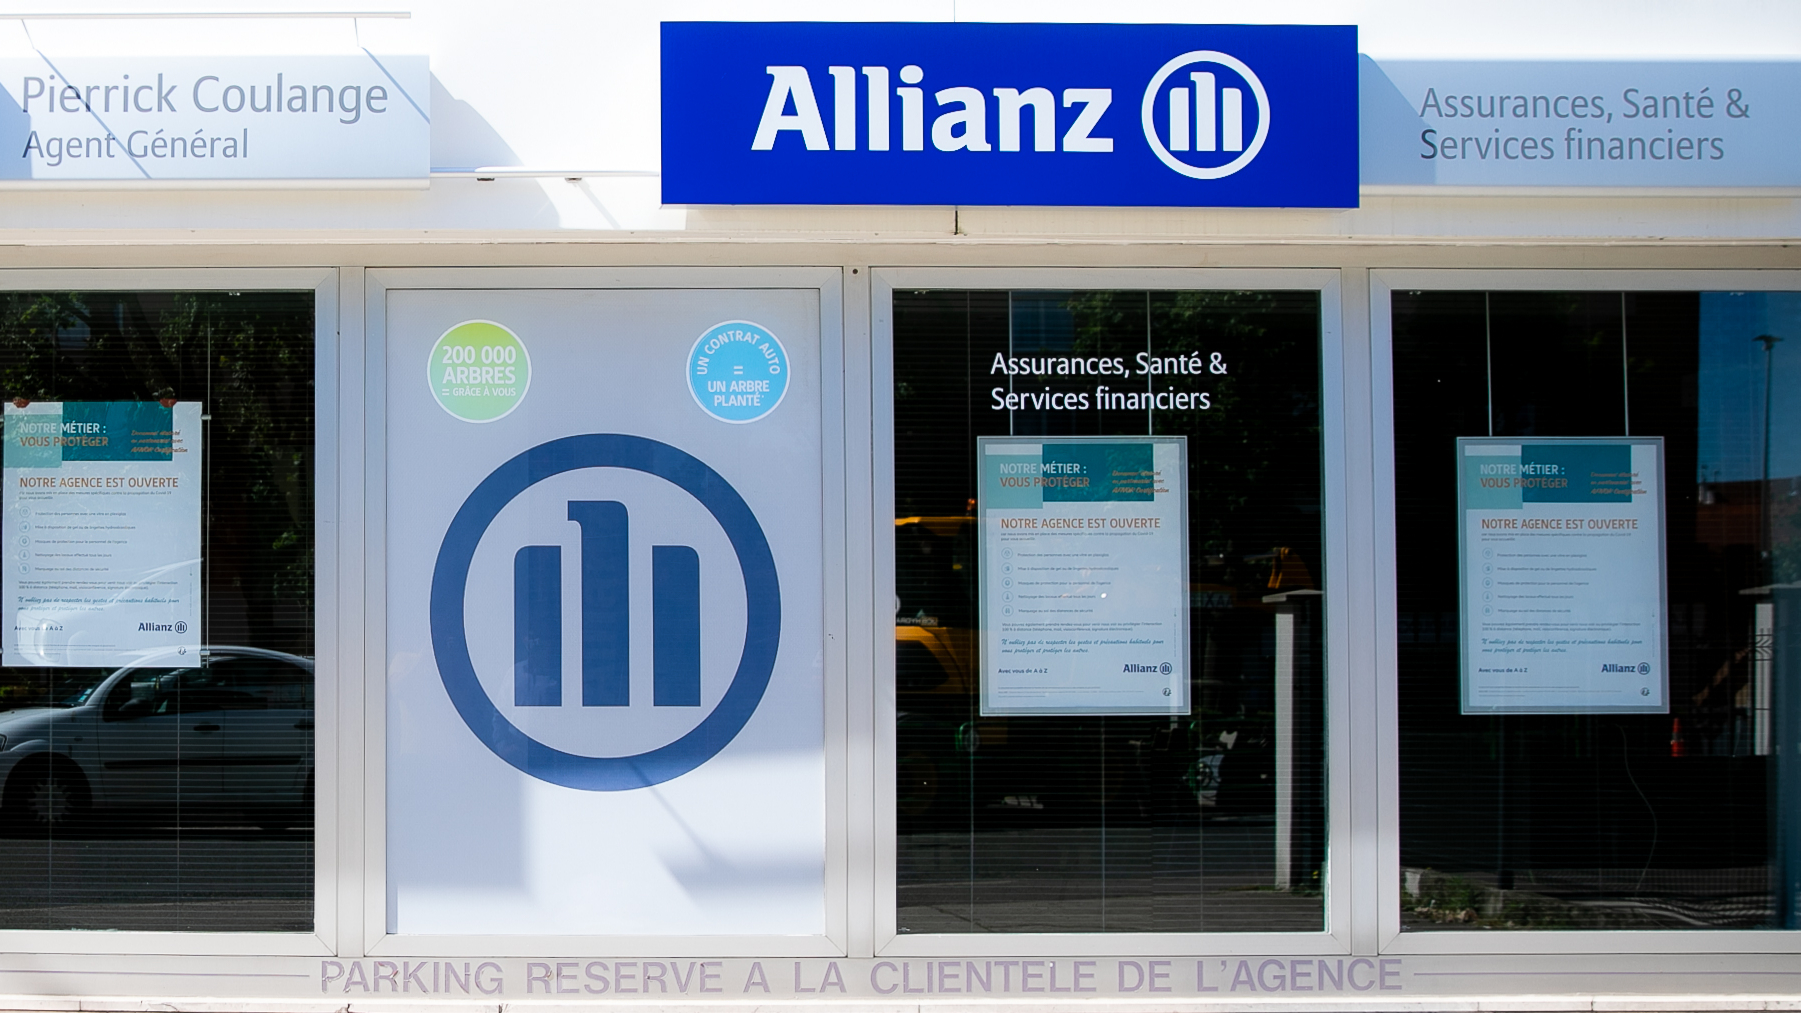 Allianz CONFLANS SAINTE HONORINE - Pierrick COULANGE